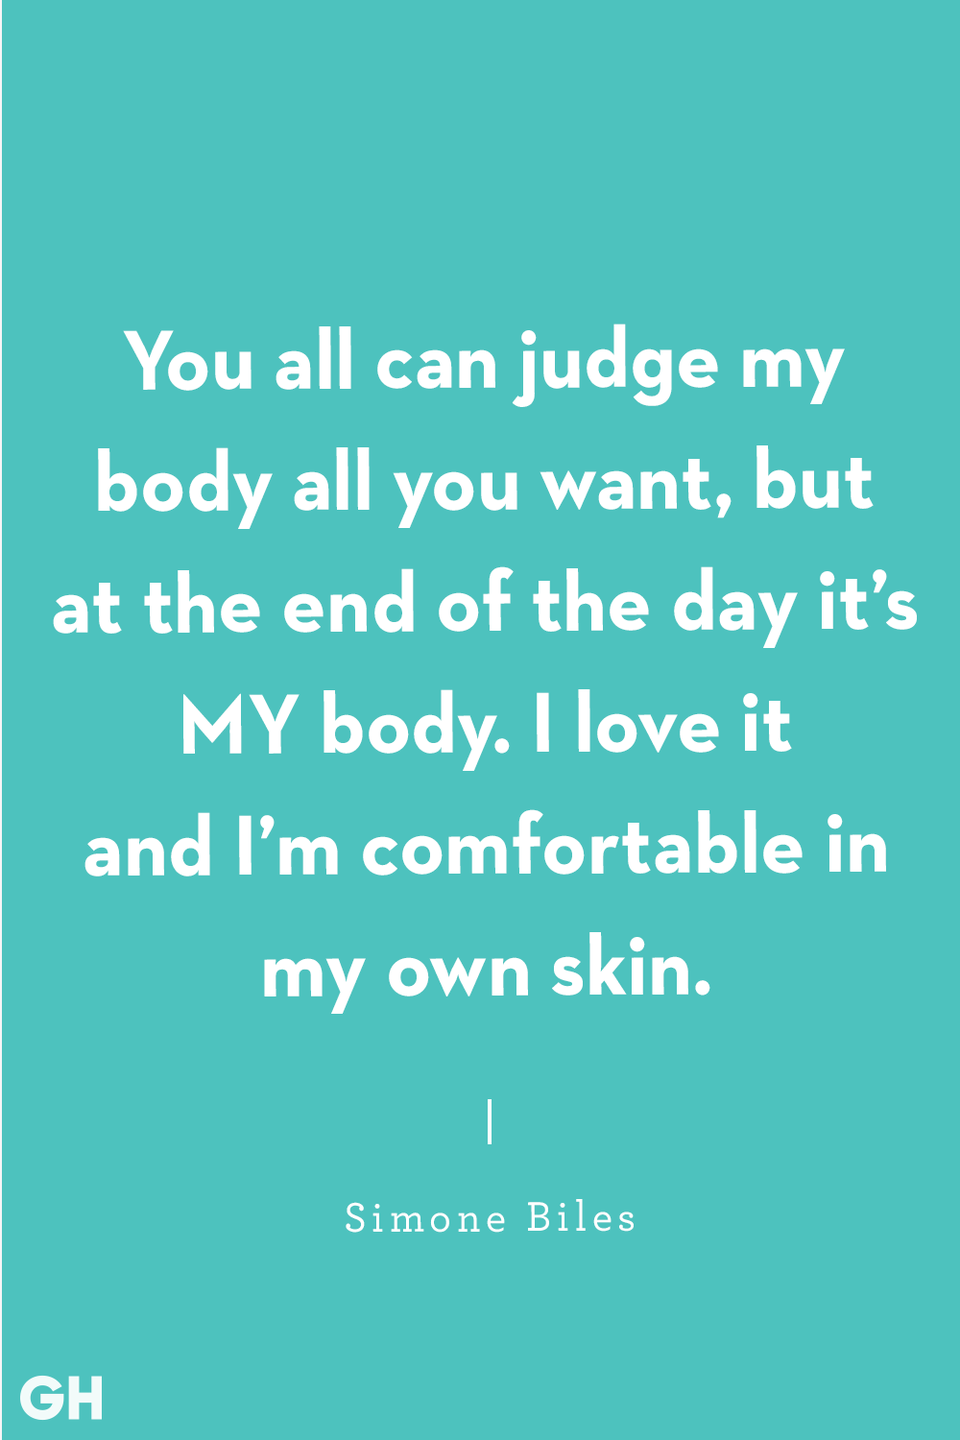 "<p>""You all can judge my body all you want, but at the end of the day it's MY body. I love it and I'm comfortable in my own skin.""</p>"